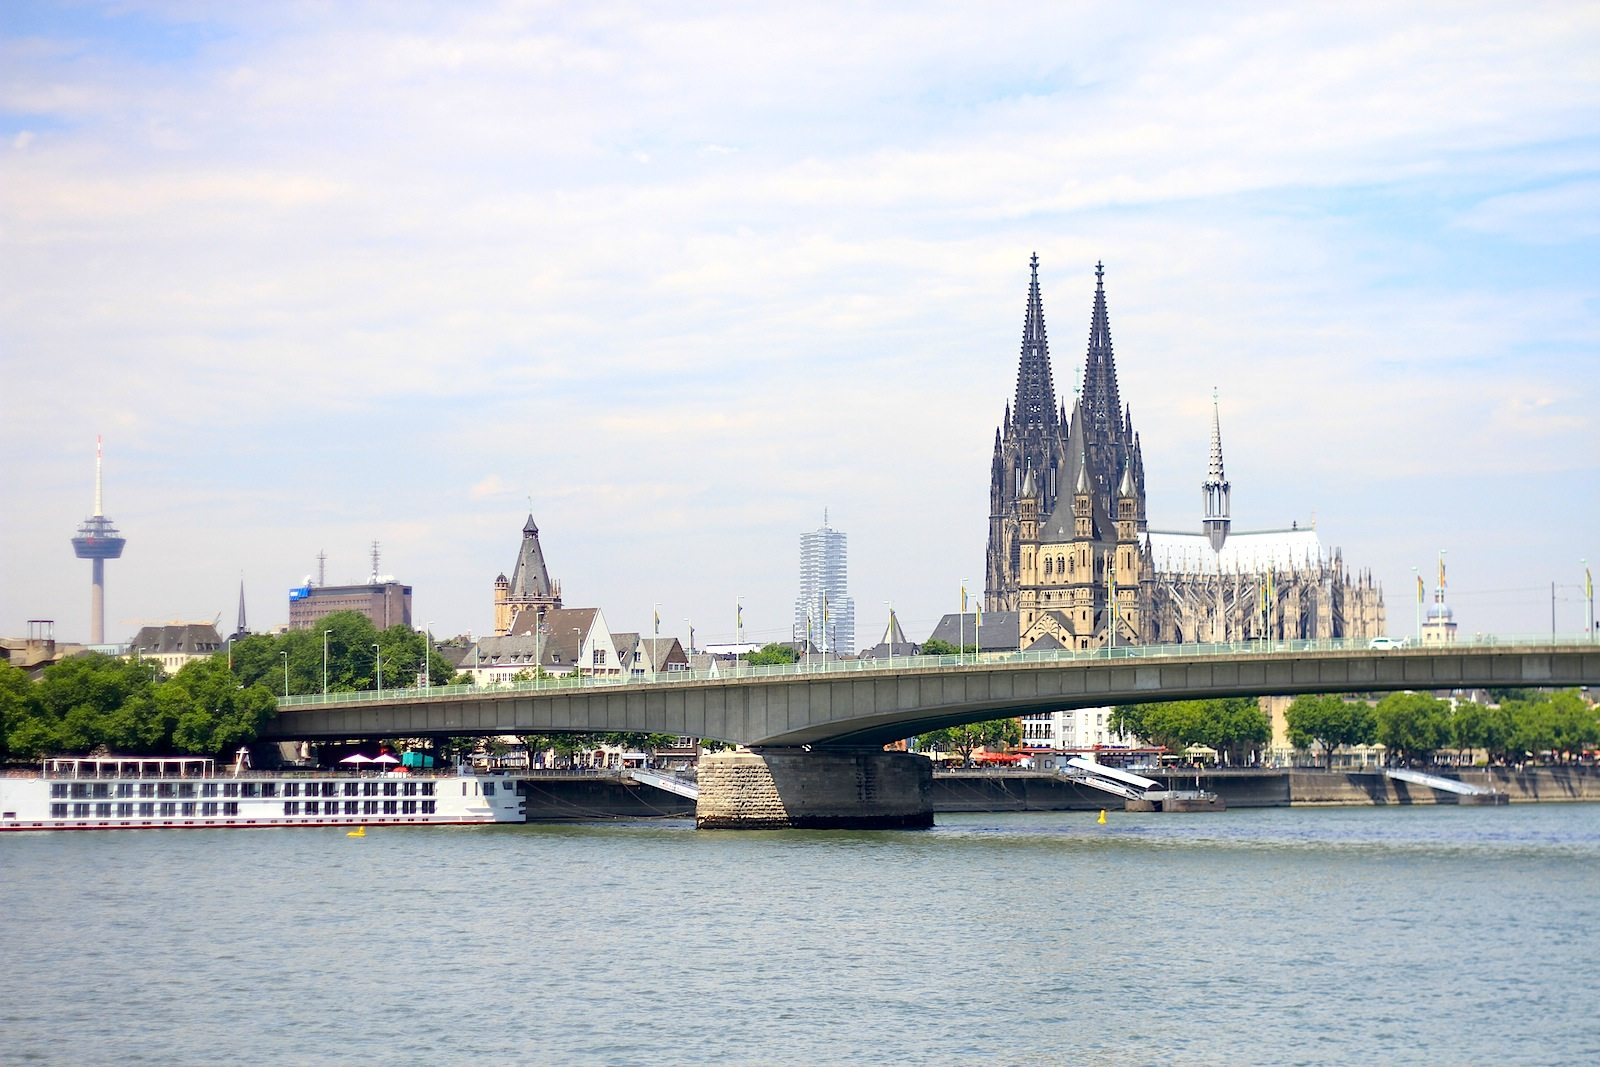 Altstadt of Cologne.  Deutzer Brücke with the Cathedral (Dom), Cologne Tower (KölnTurm), town hall, WDR, TV tower Colonius.